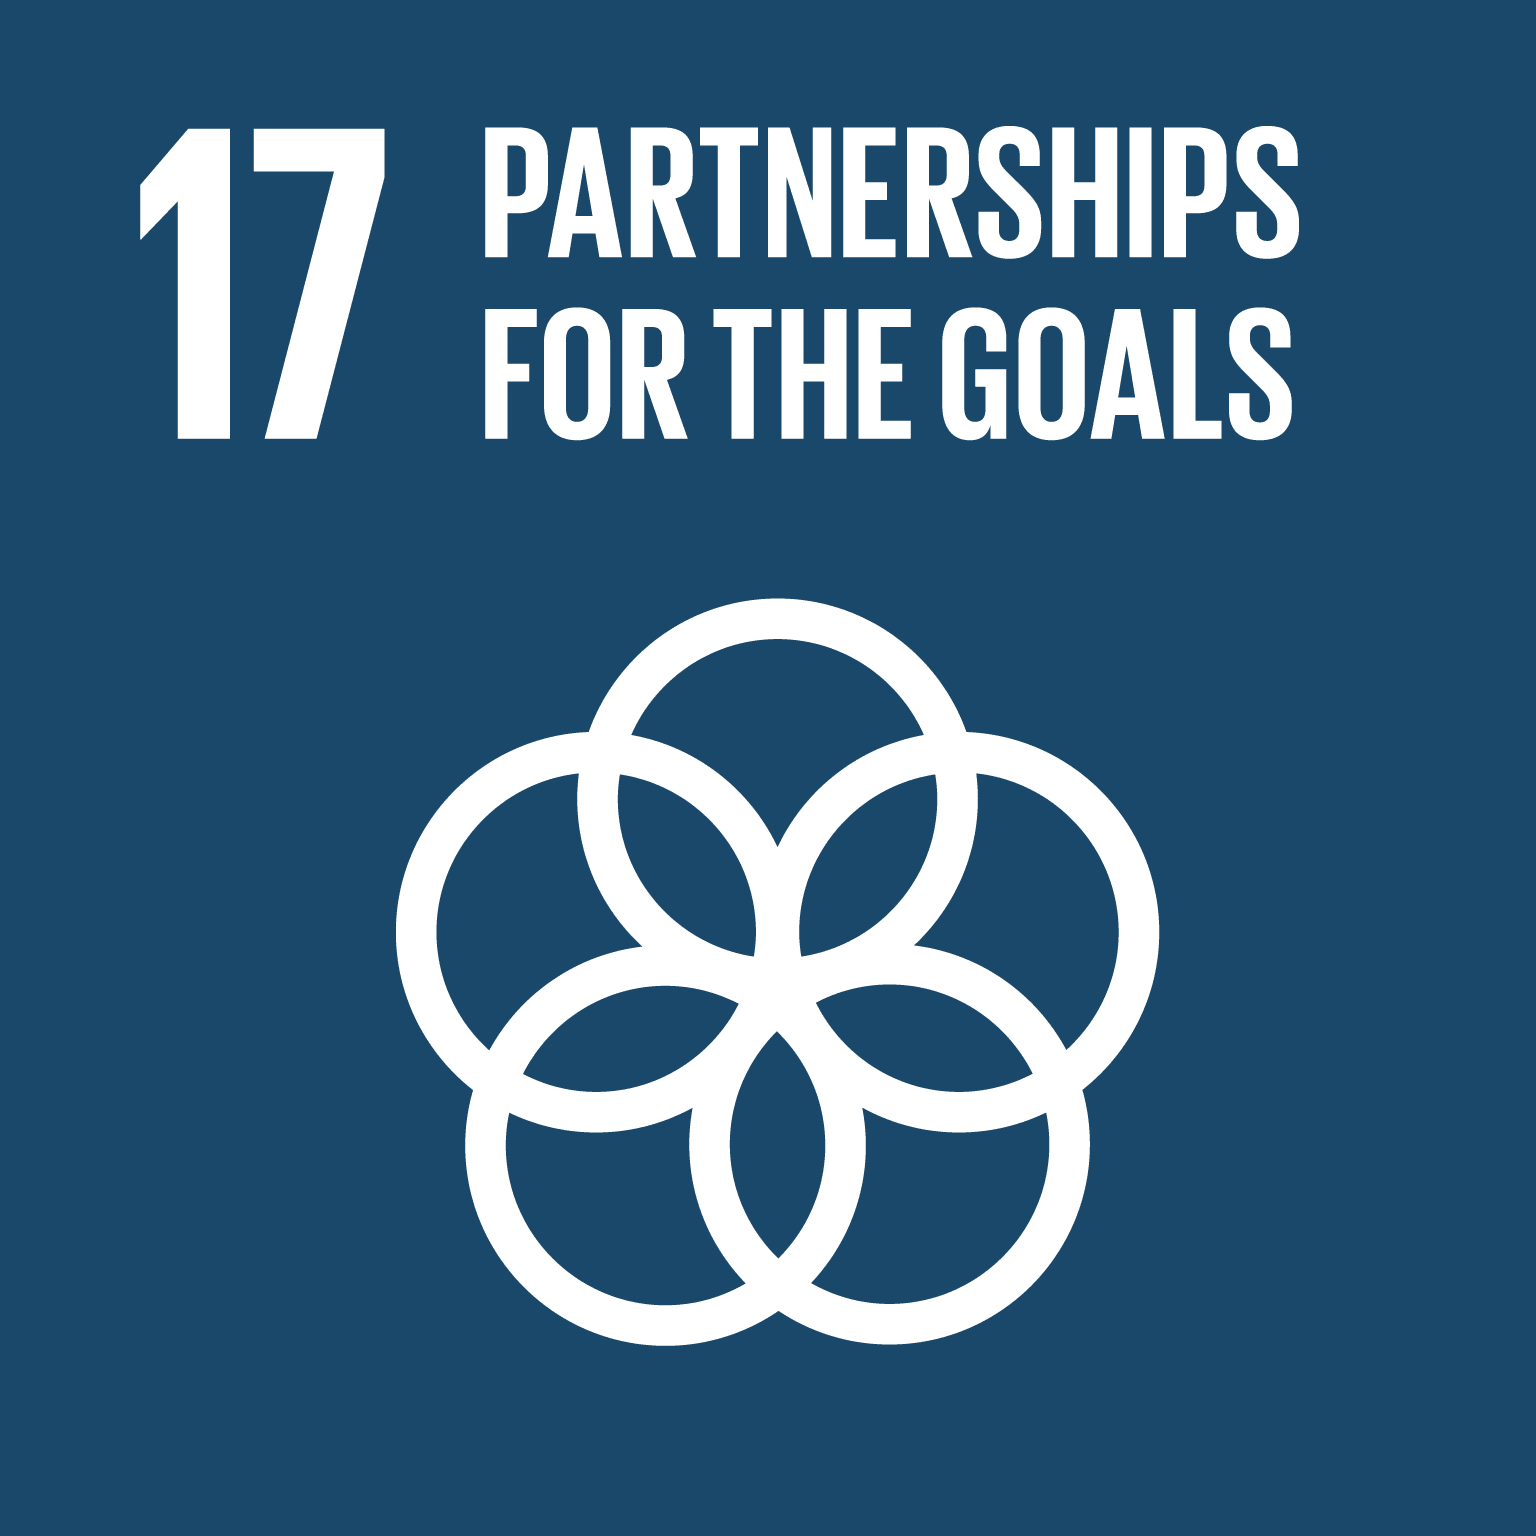 To achieve the goals in partnership